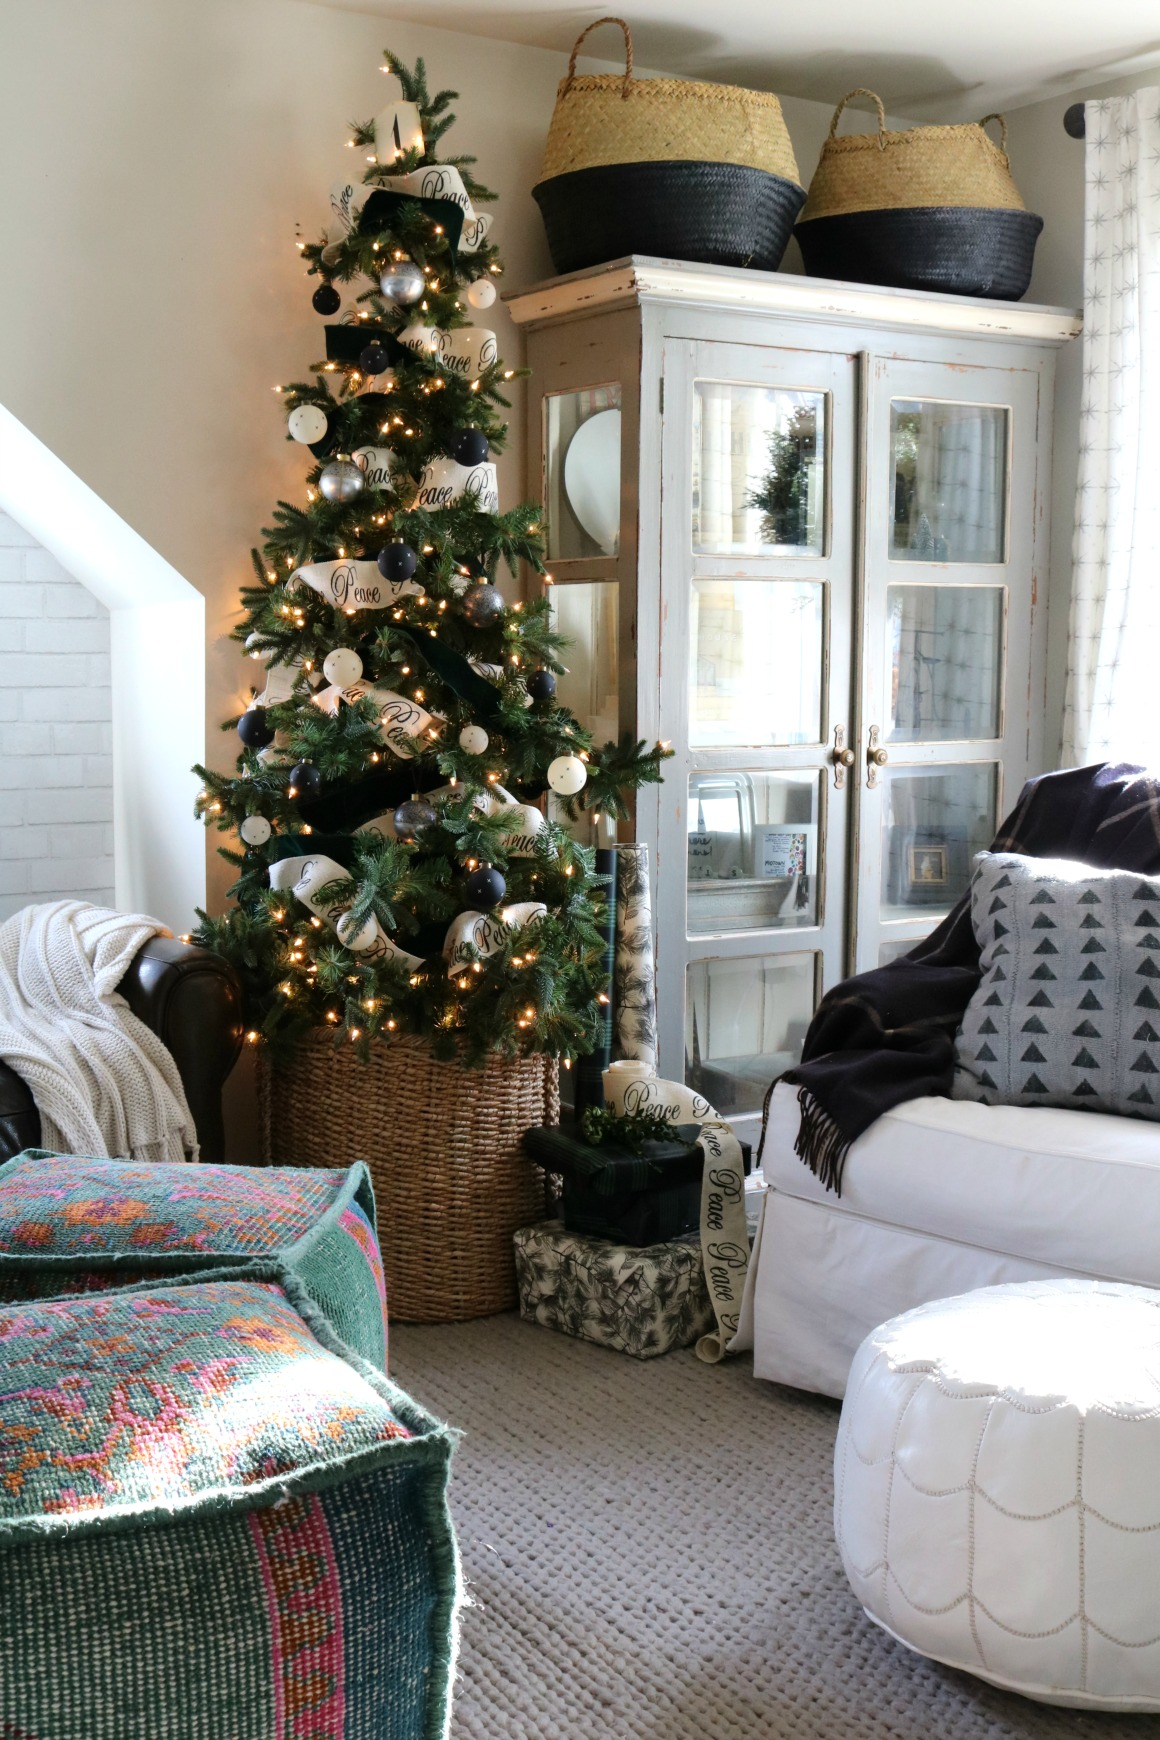 Christmas Ideas In A Small Space Upstairs Tour Nesting With Grace